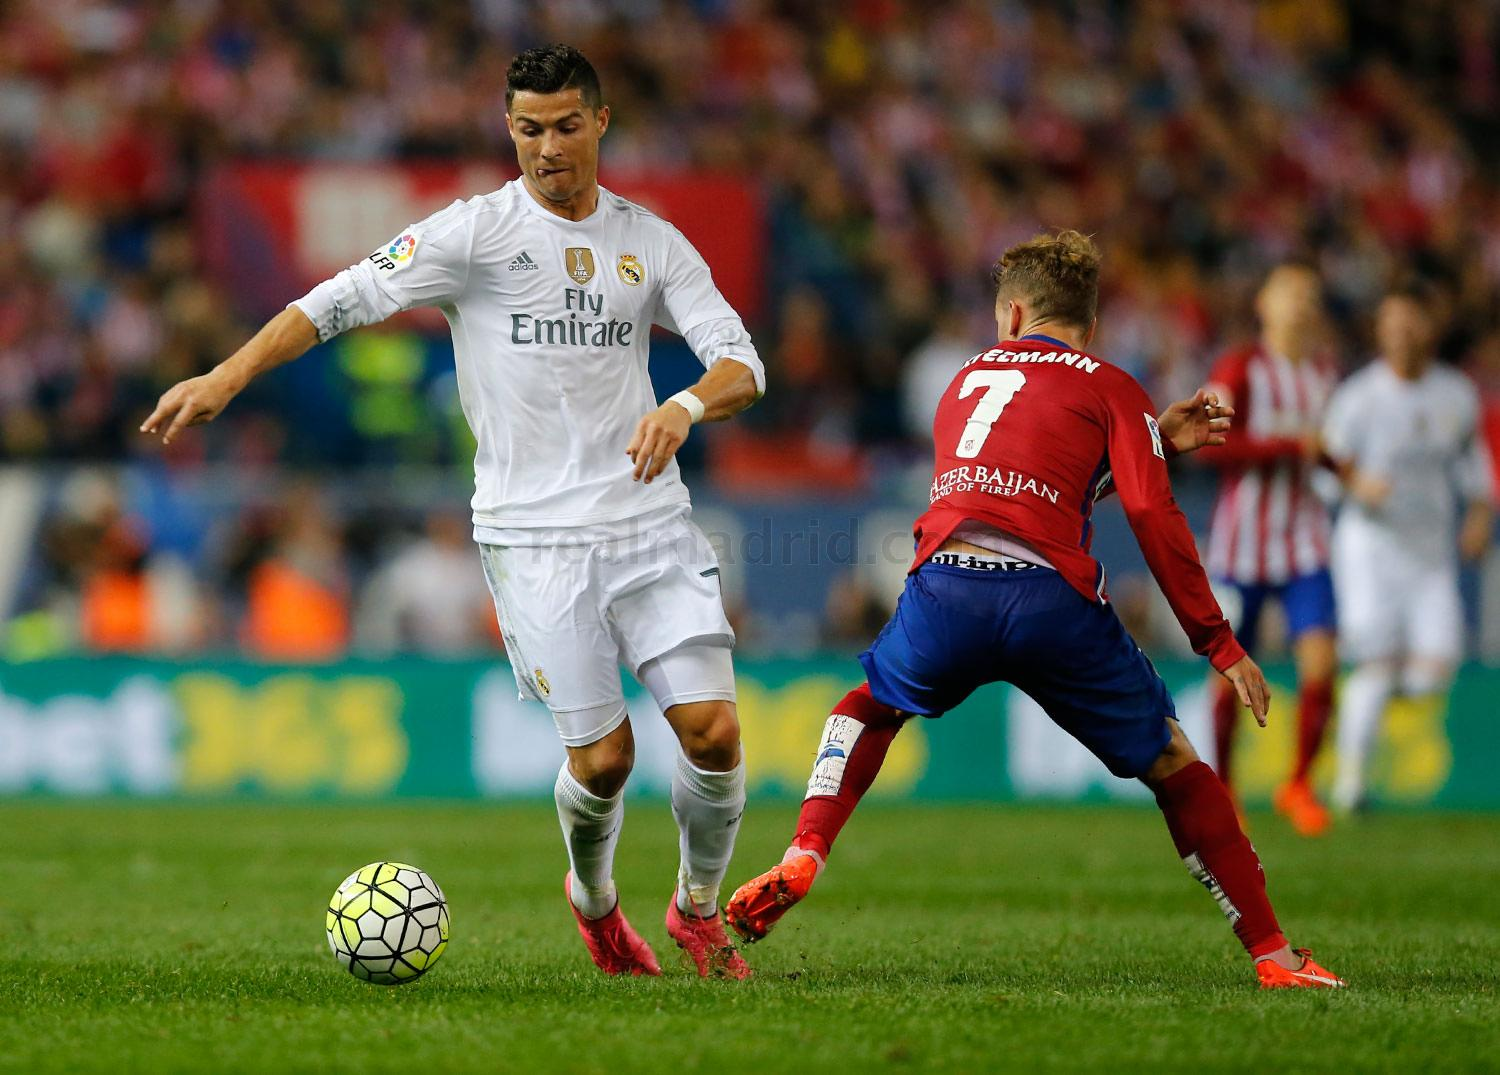 Real Madrid - Atlético de Madrid - Real Madrid - 04-10-2015